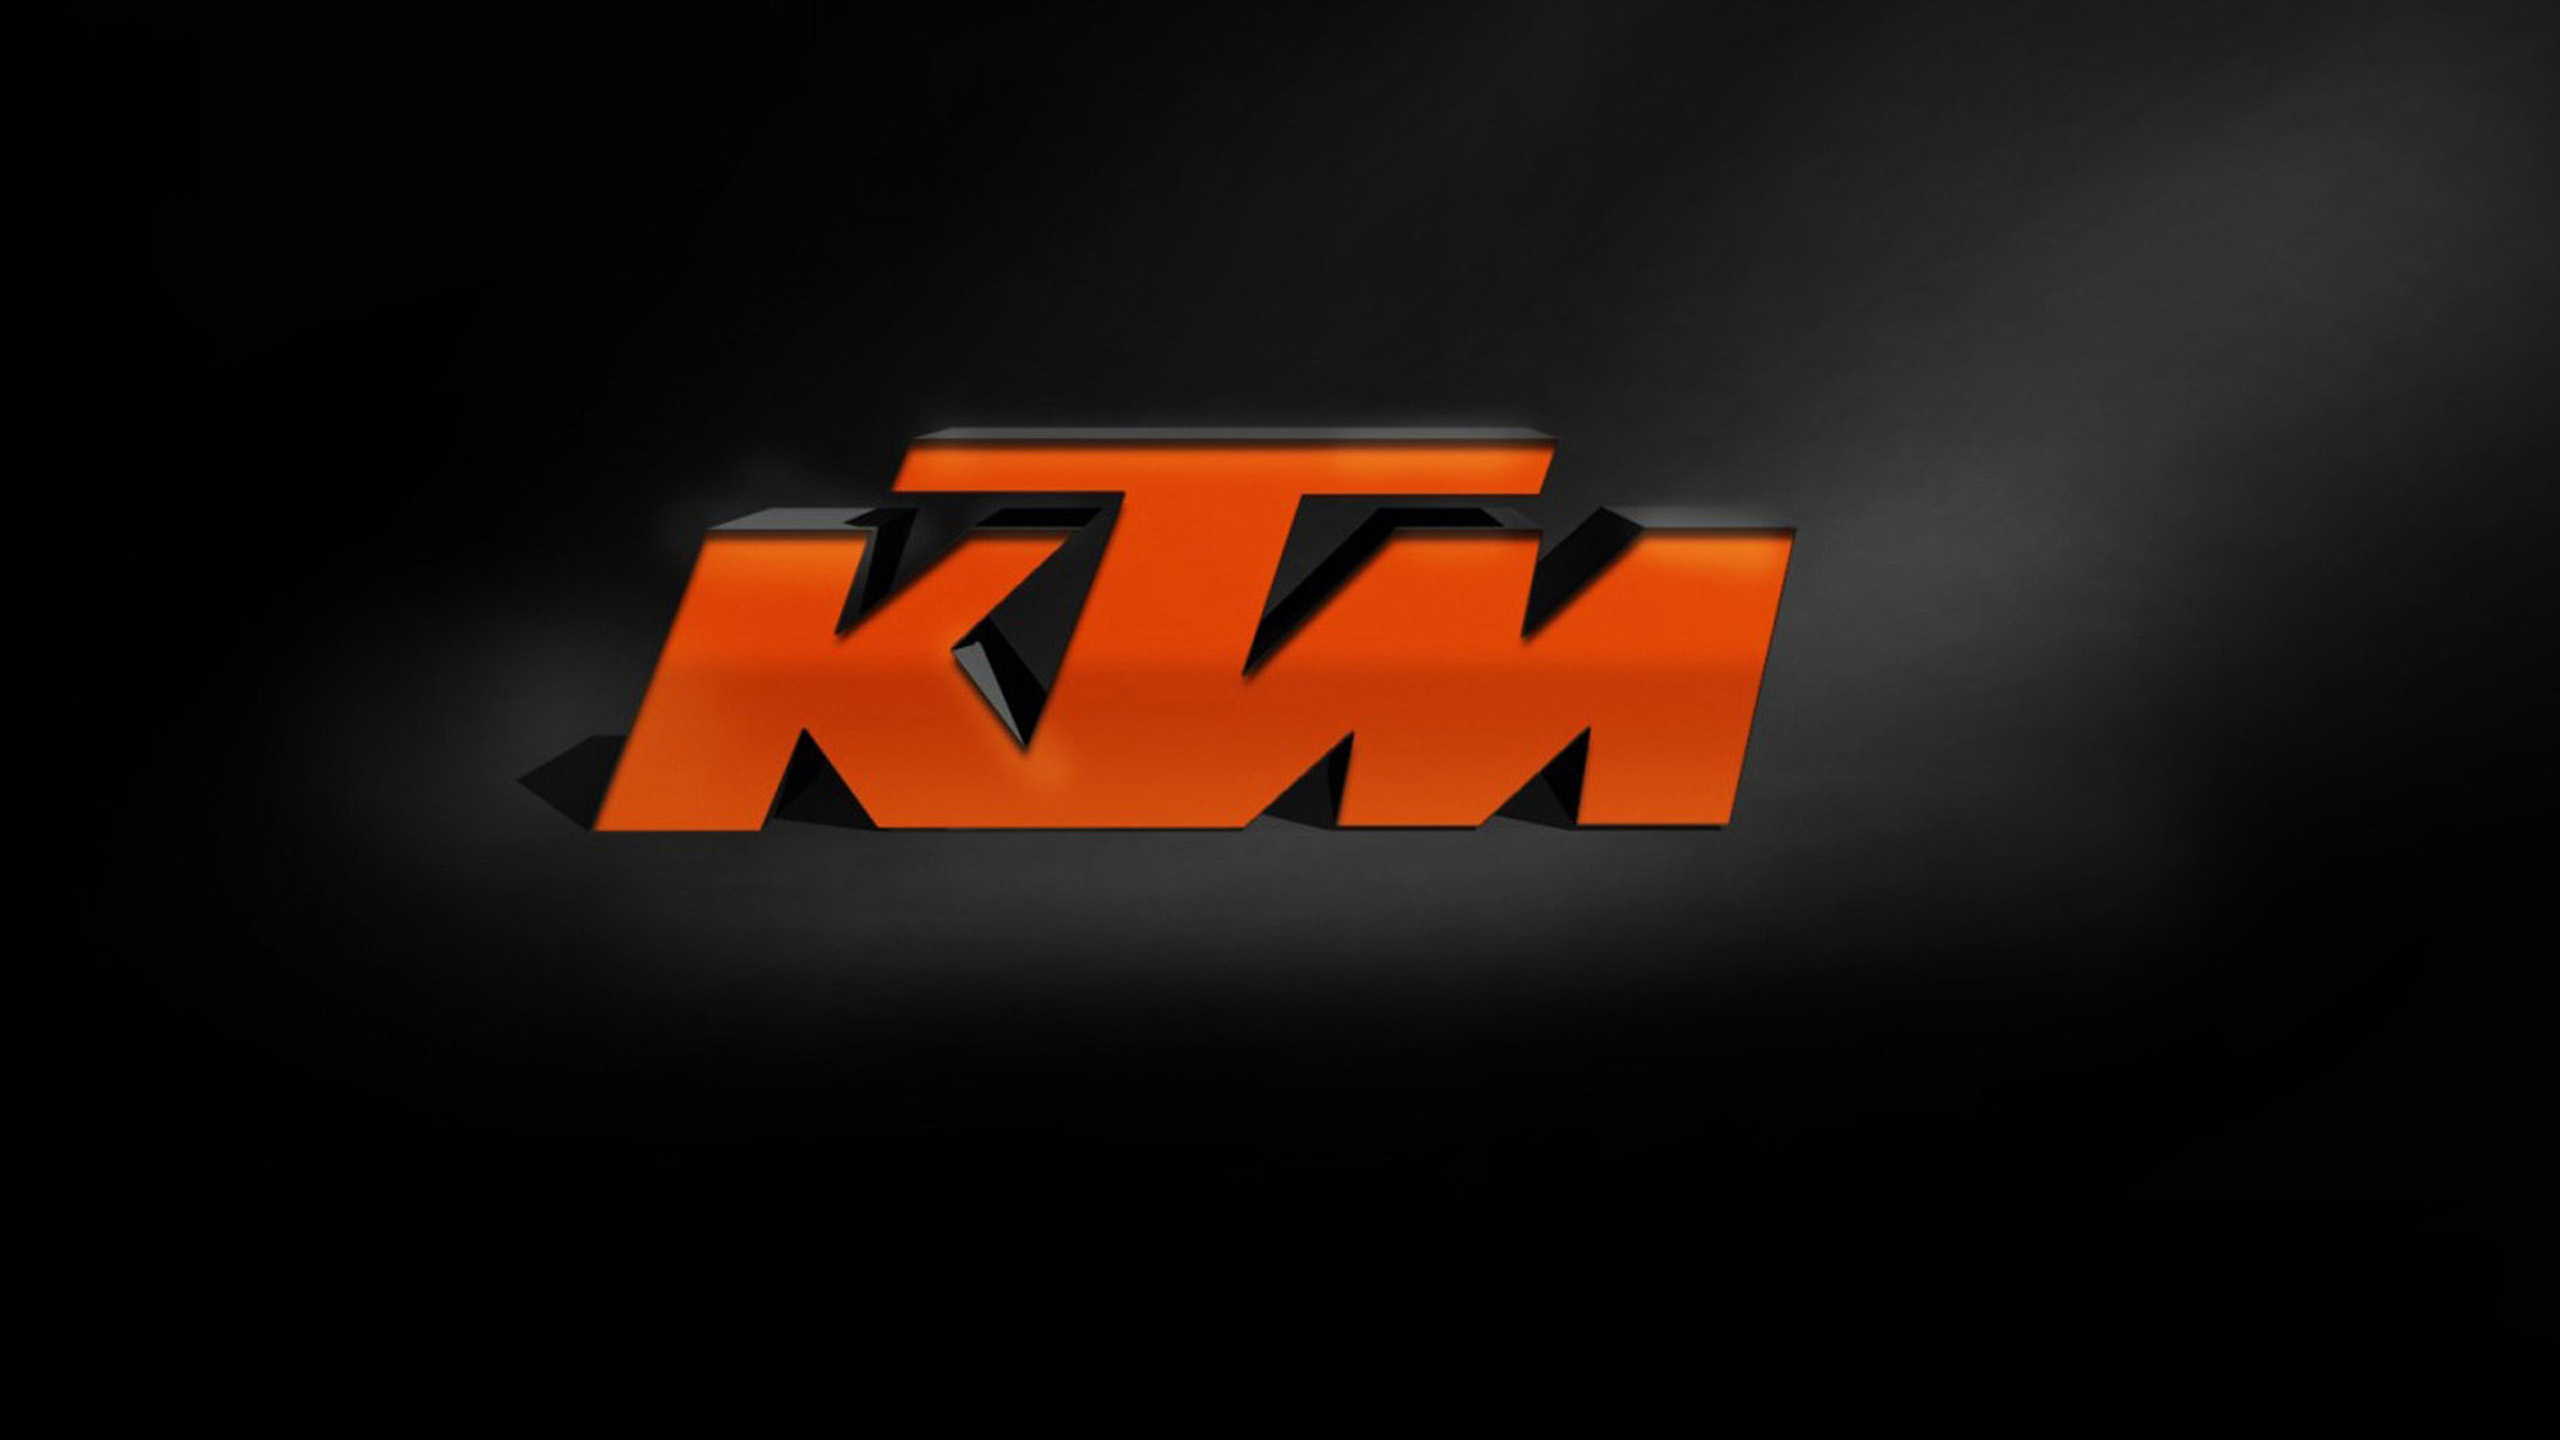 44 Ktm Logo Wallpaper On Wallpapersafari